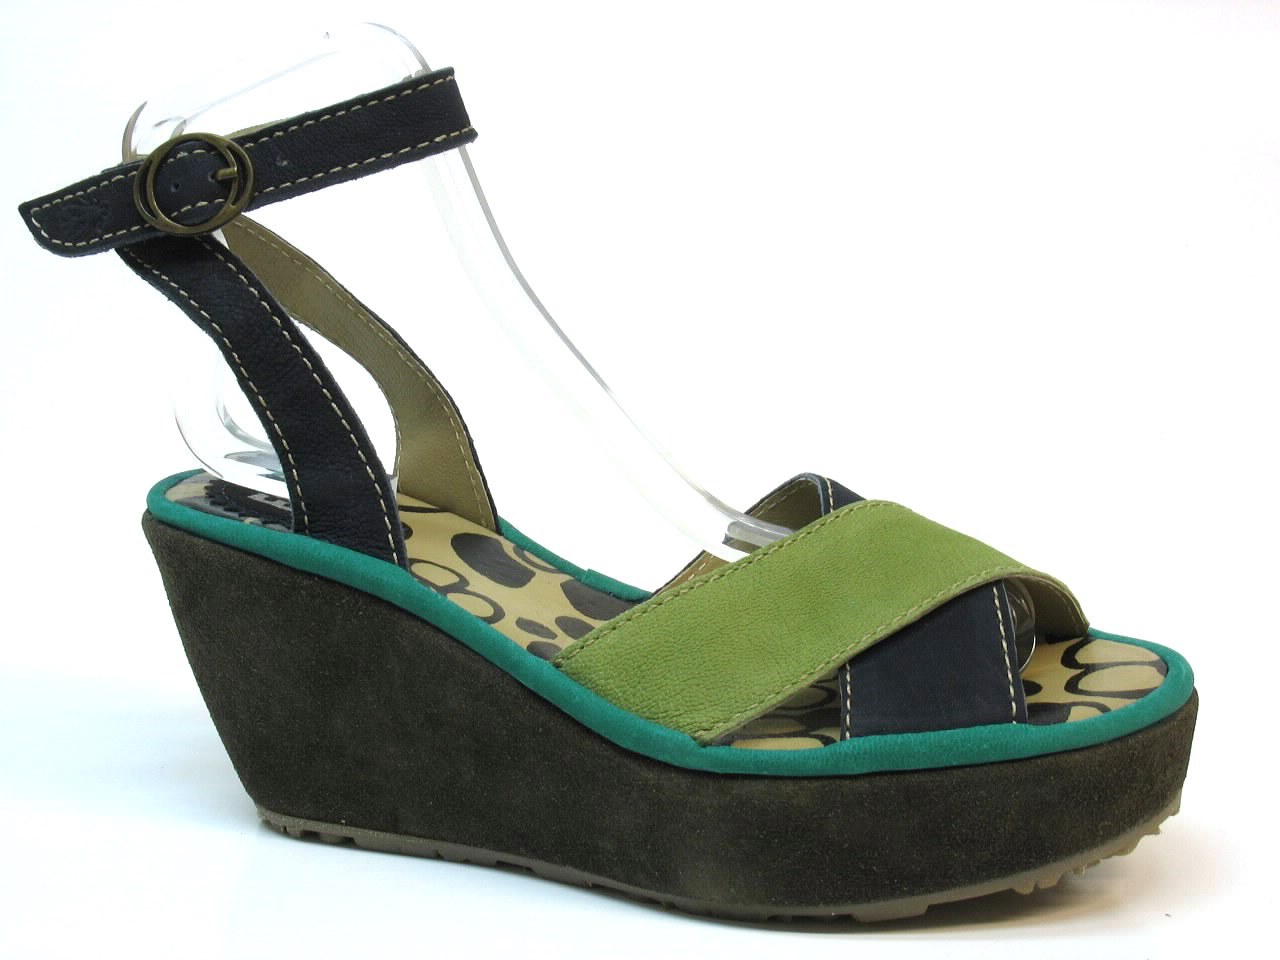 Wedge Sandals Fly London - 339 PATI